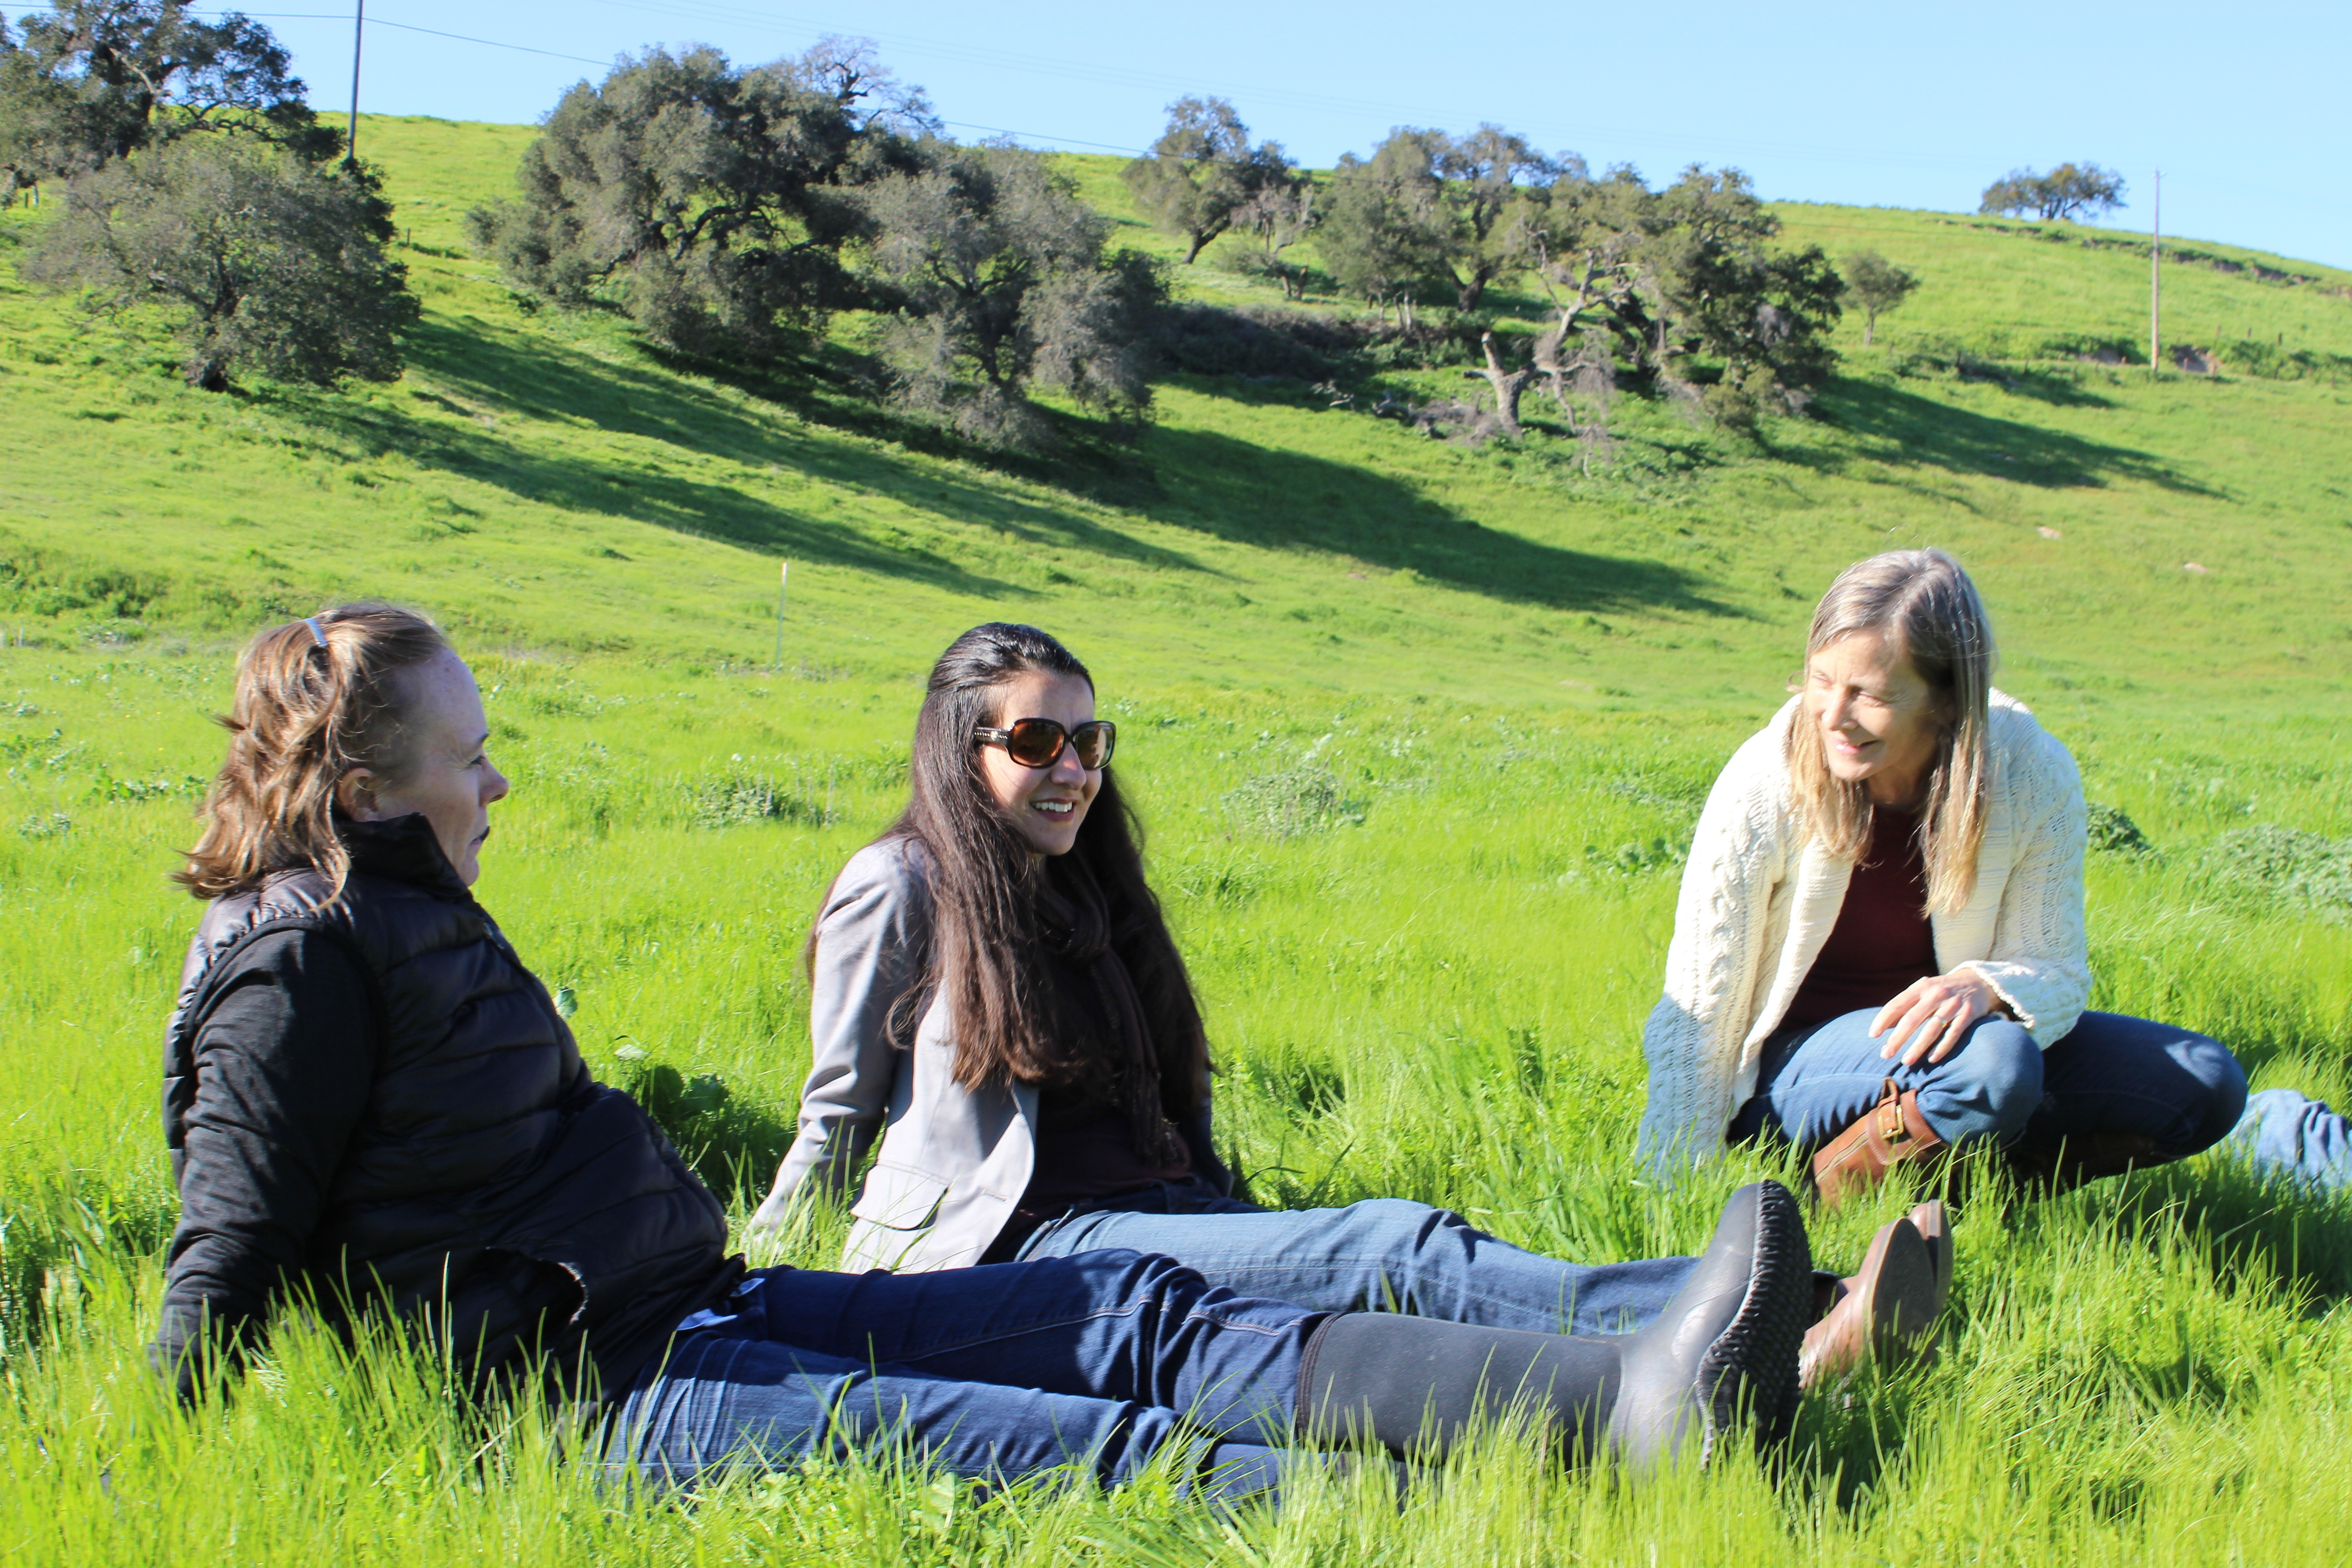 Sigrid Wright, Monique Limon, and Sharyn Main enjoying the green hills at Ted Chamberlin Ranch